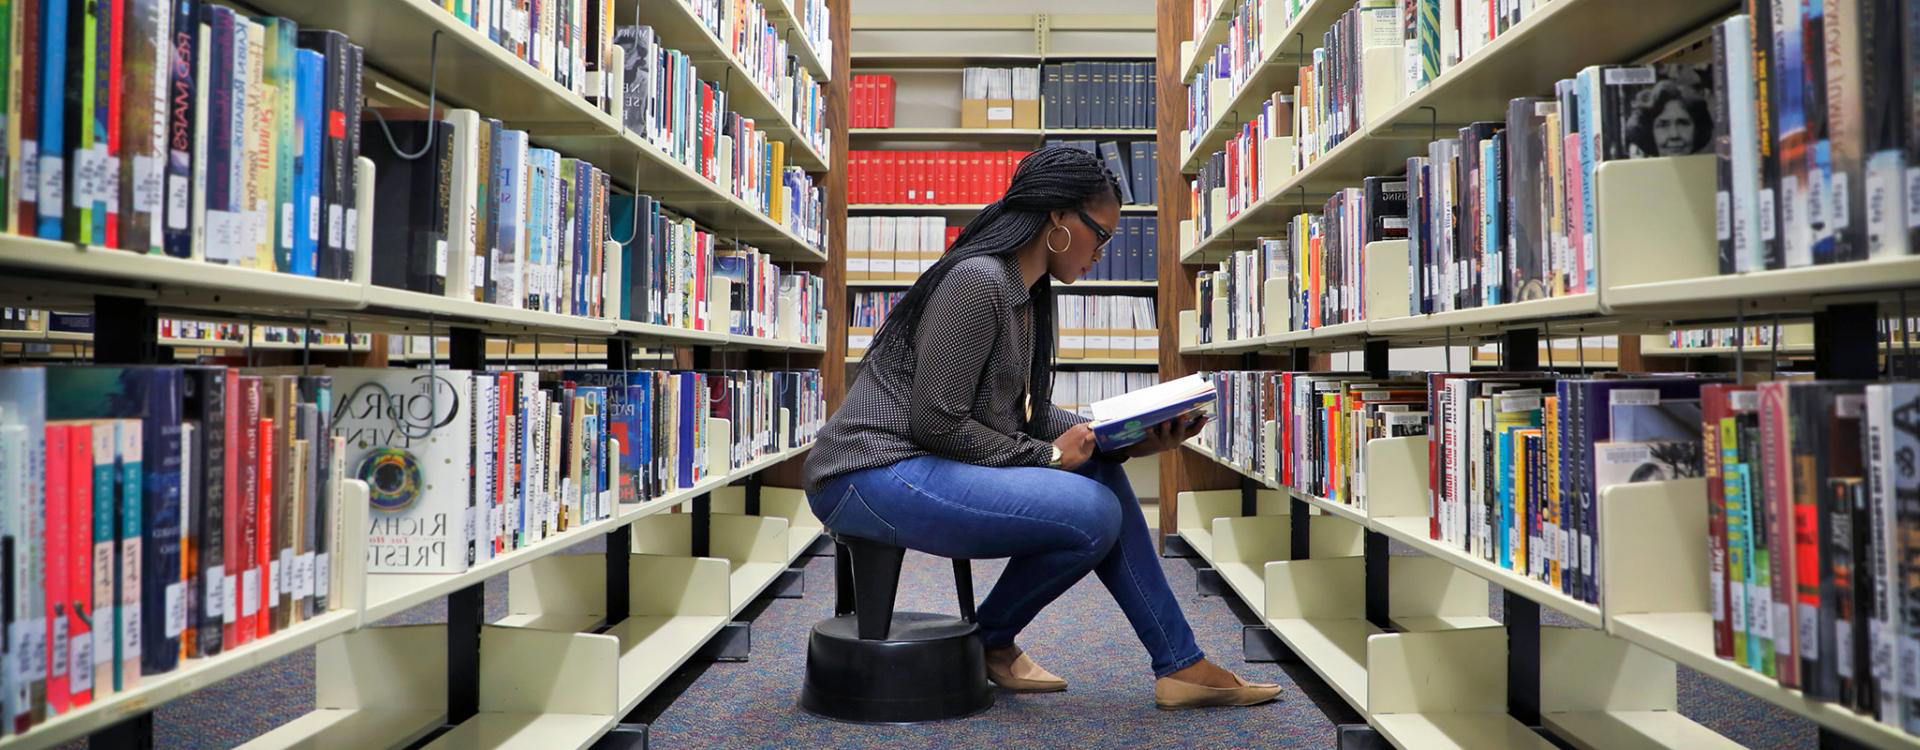 female student sitting on a step stool reading a book she just pulled from the library shelf